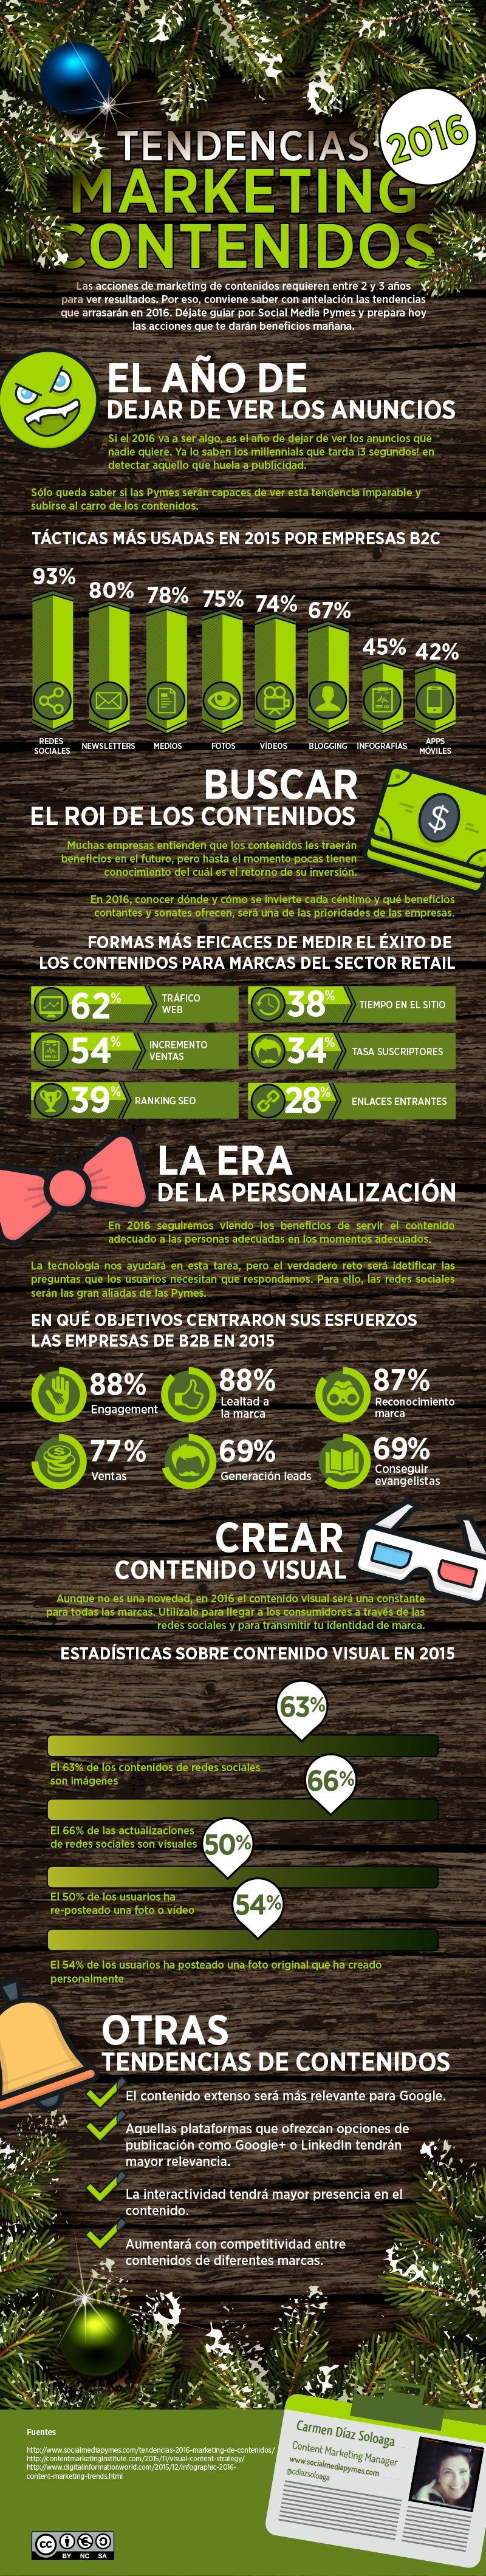 Tendencias de Marketing de Contenidos para 2016